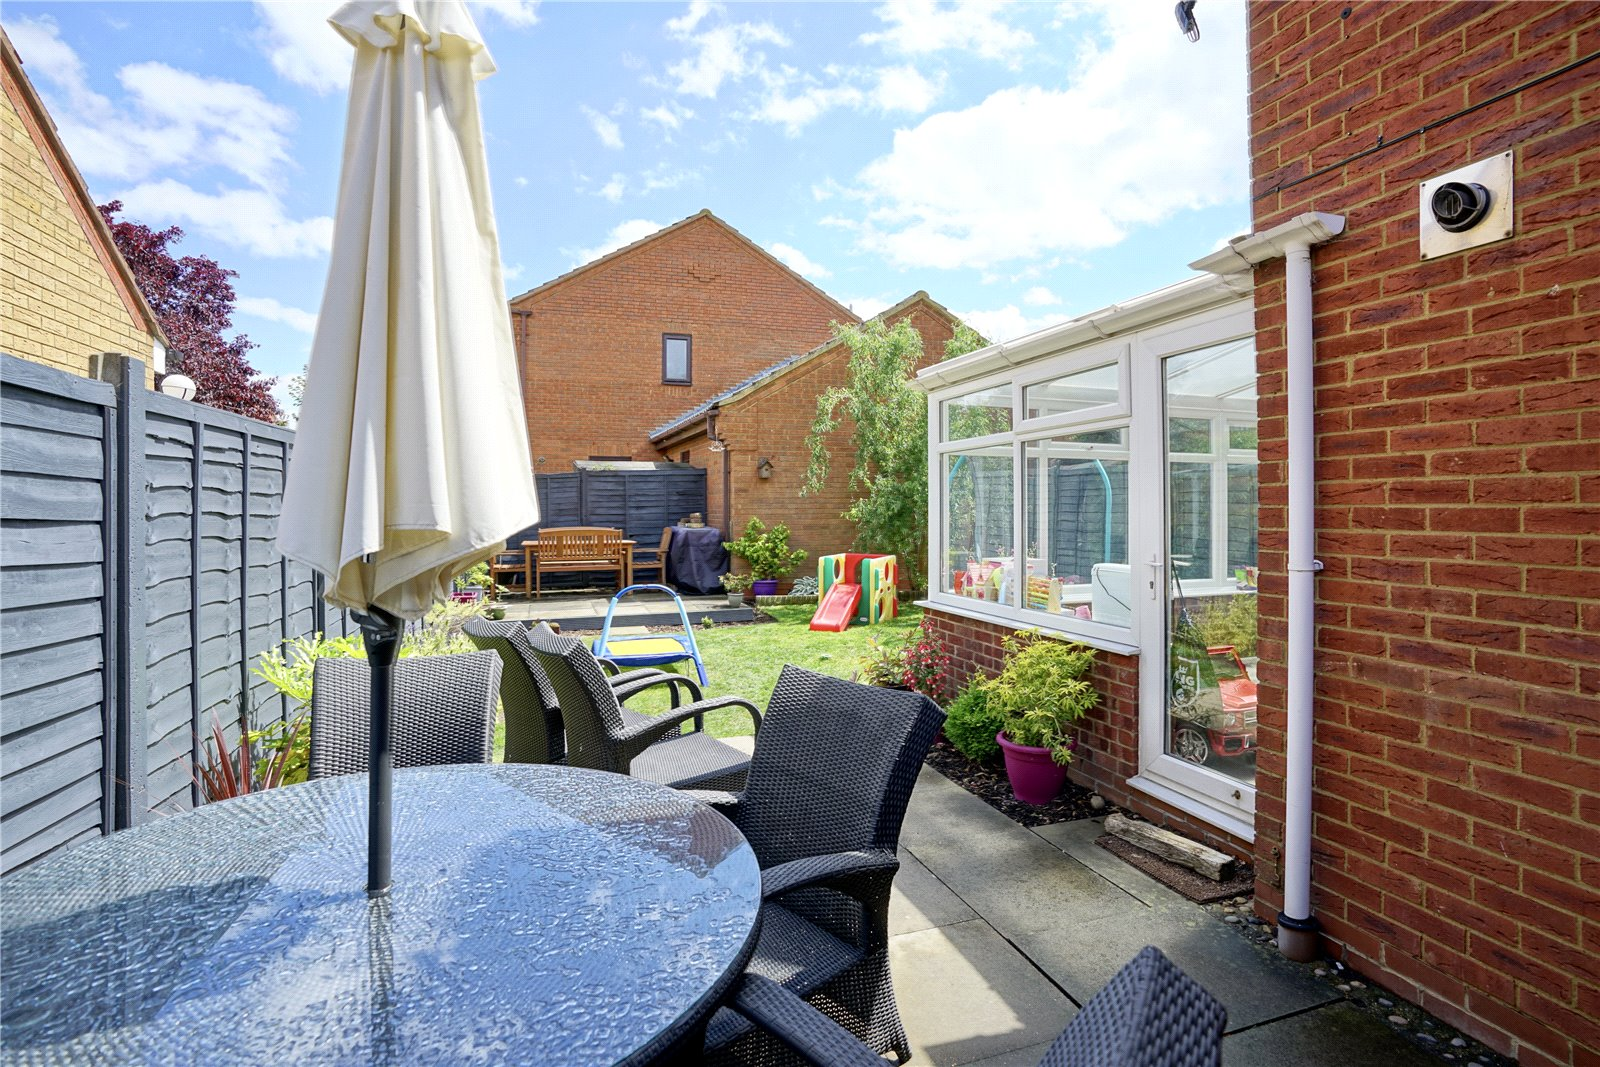 3 bed house for sale in Swift Close, St. Neots  - Property Image 9